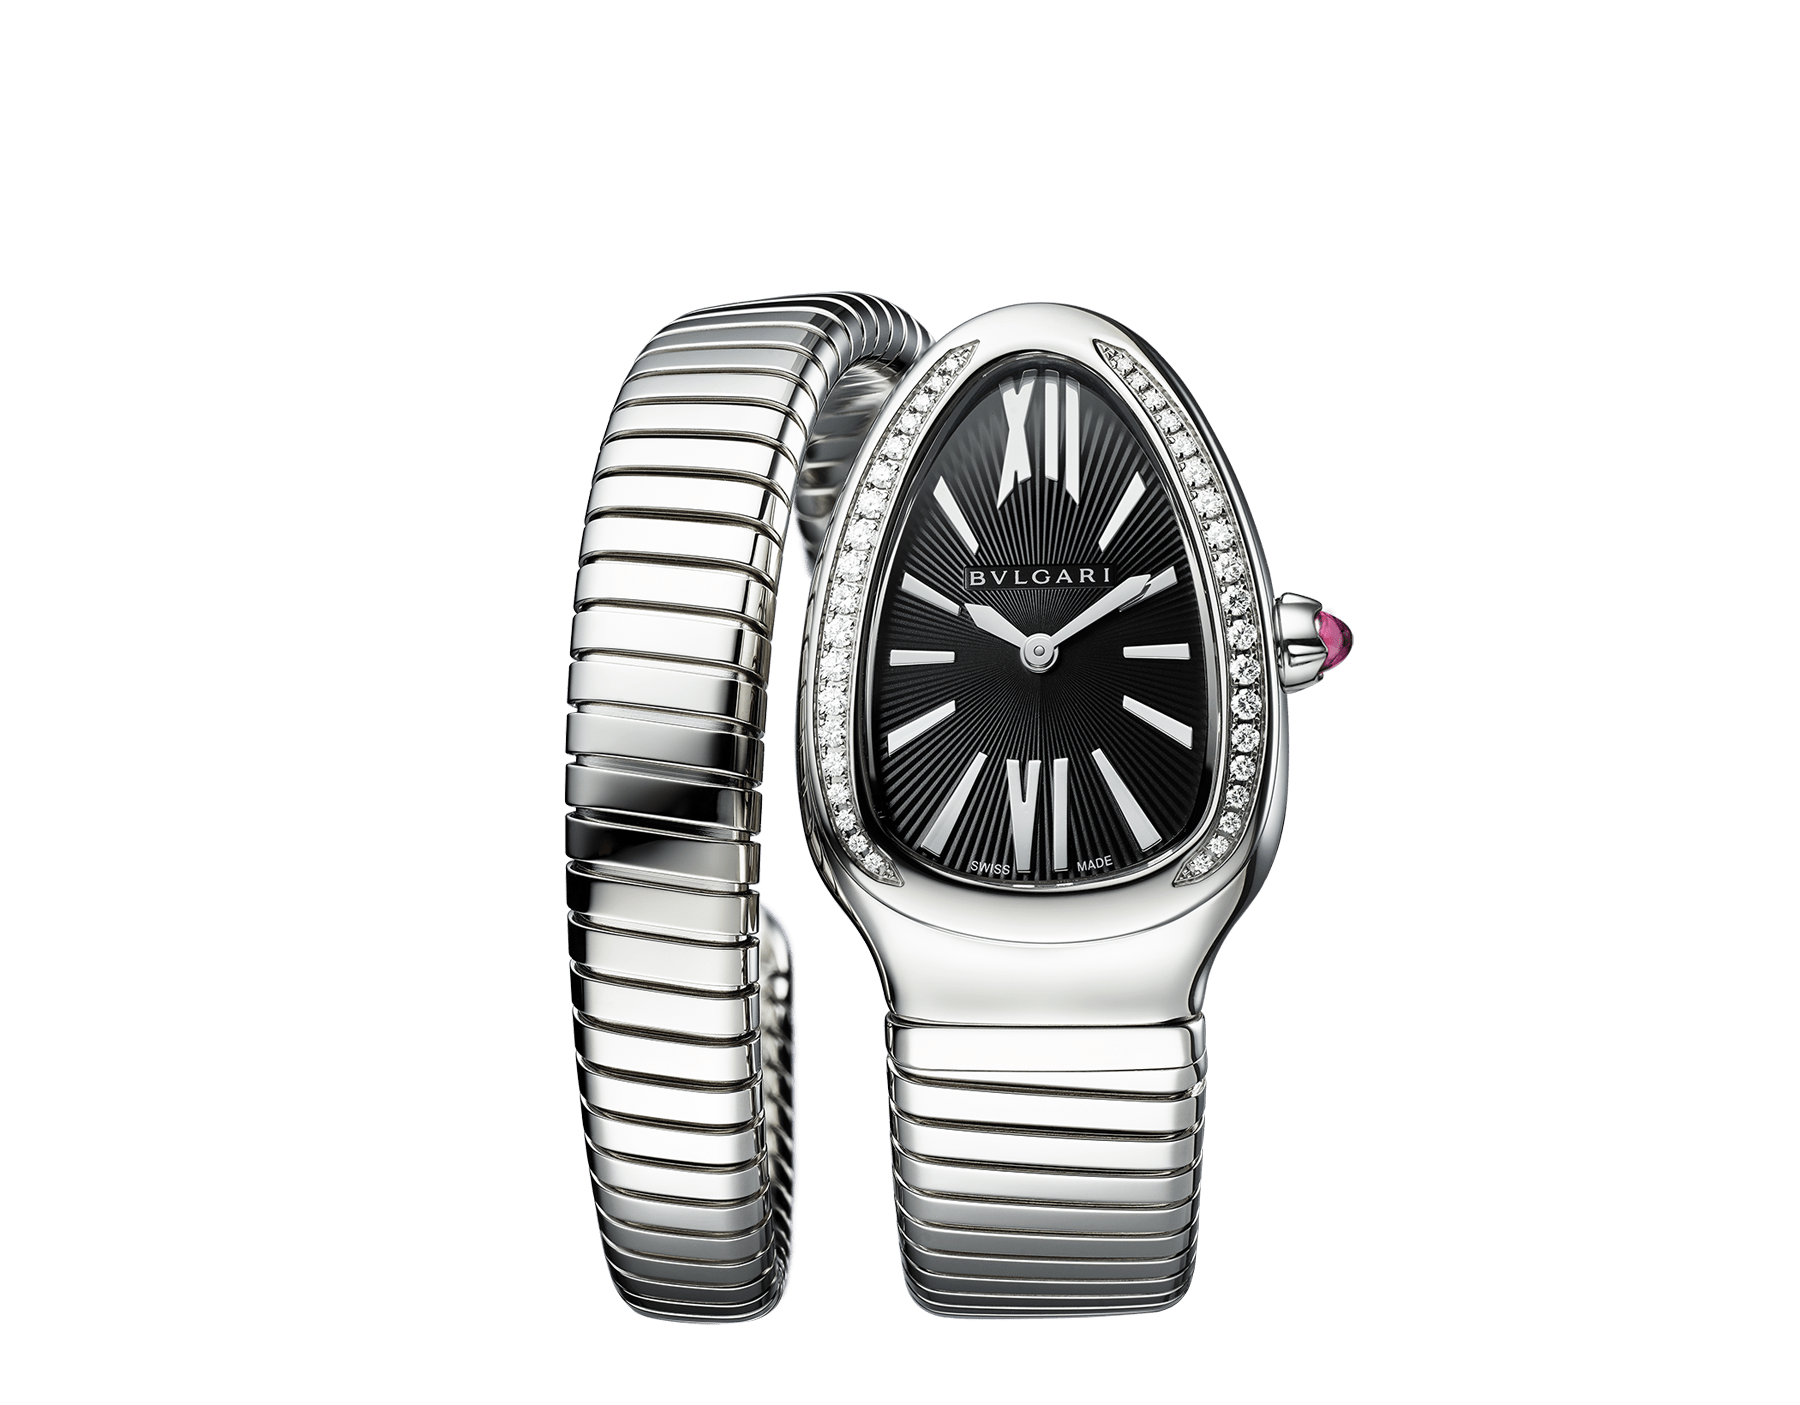 Serpenti Tubogas single spiral watch with stainless steel case and bracelet, bezel set with brilliant-cut diamonds and black dial with guilloché soleil treatment. Water-resistant up to 30 meters. Large size 103434 image 1